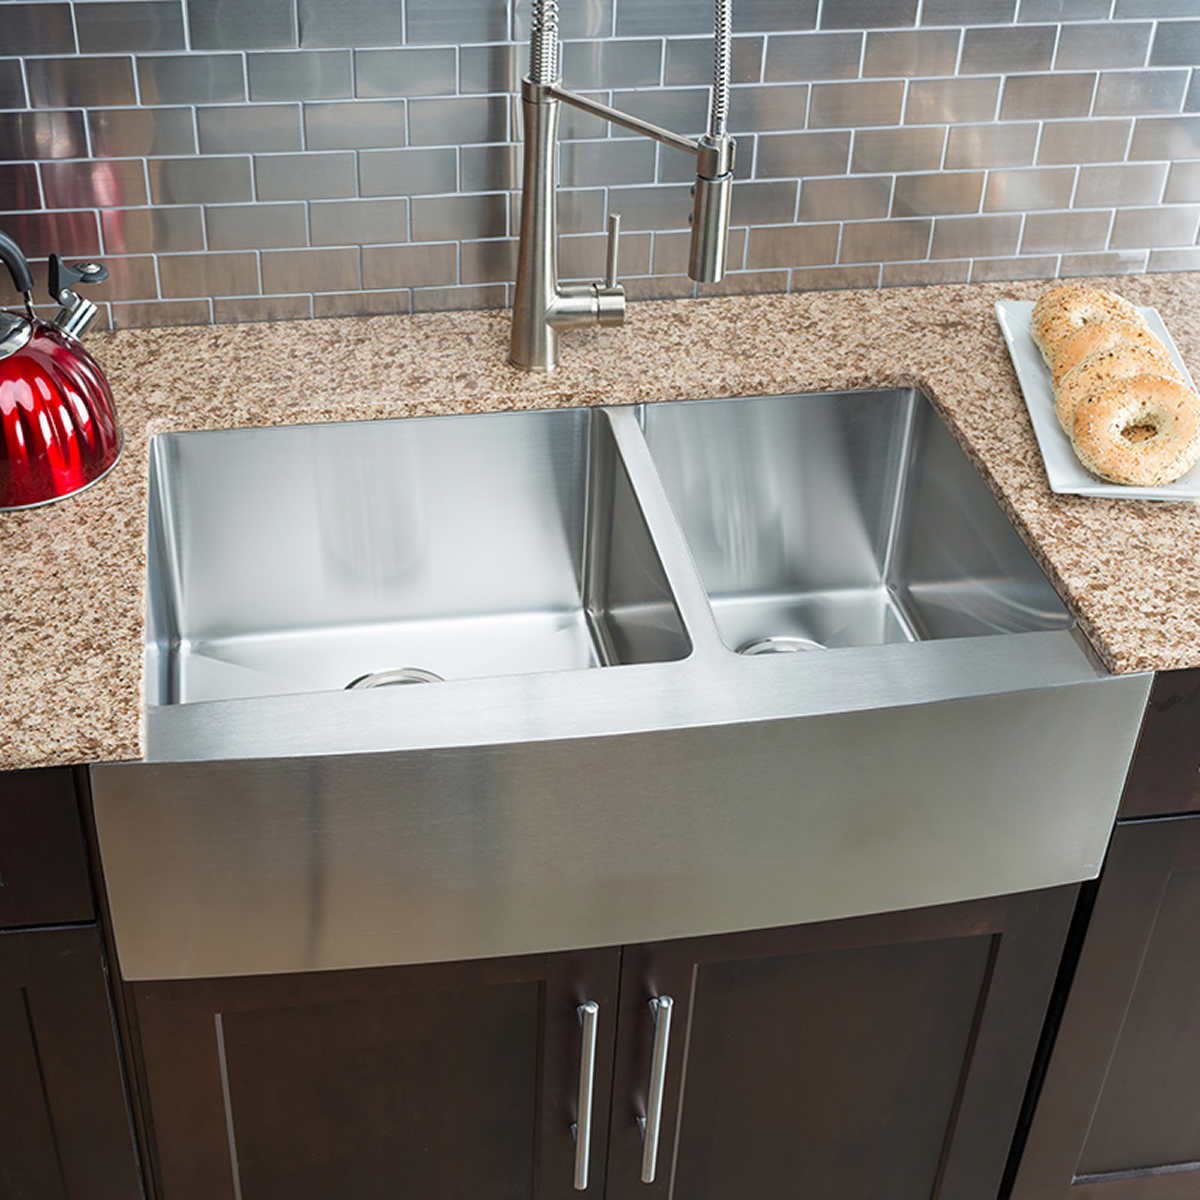 Kitchen Sinks kitchen sinks | costco